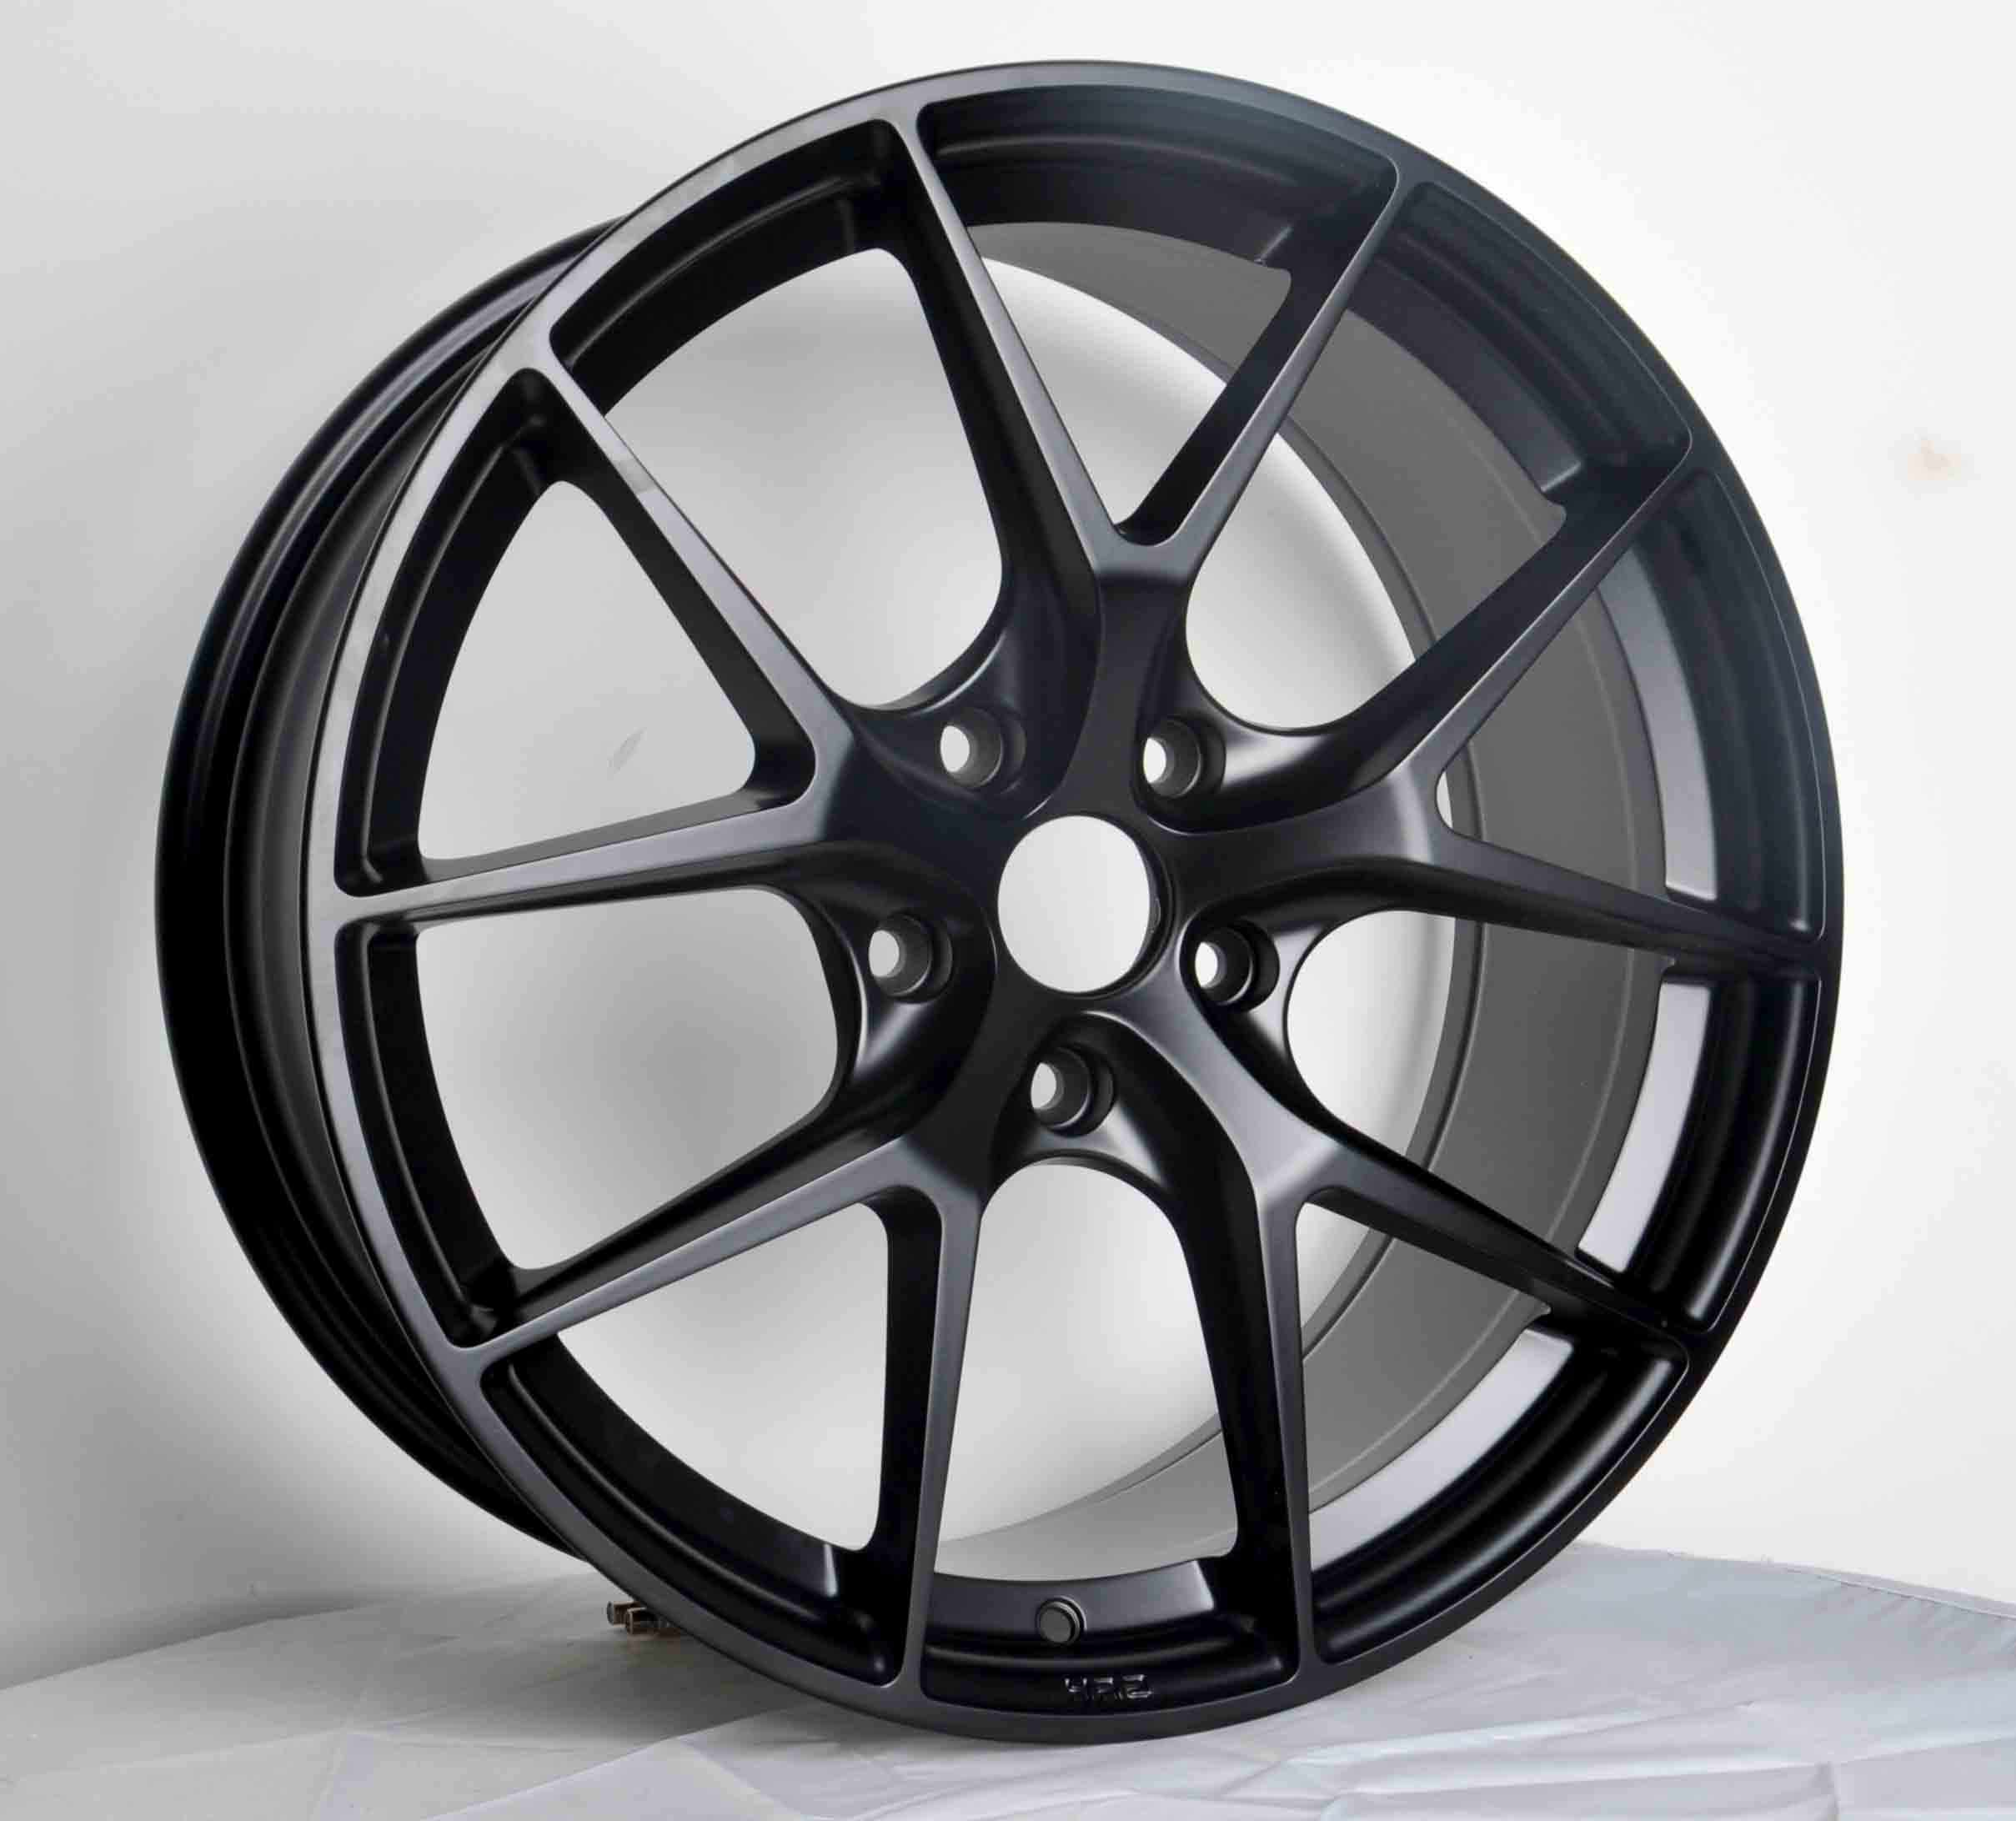 Black aftermarket 15 17 18 19 inch aluminum alloy wheel rims for car with PCD 5x120